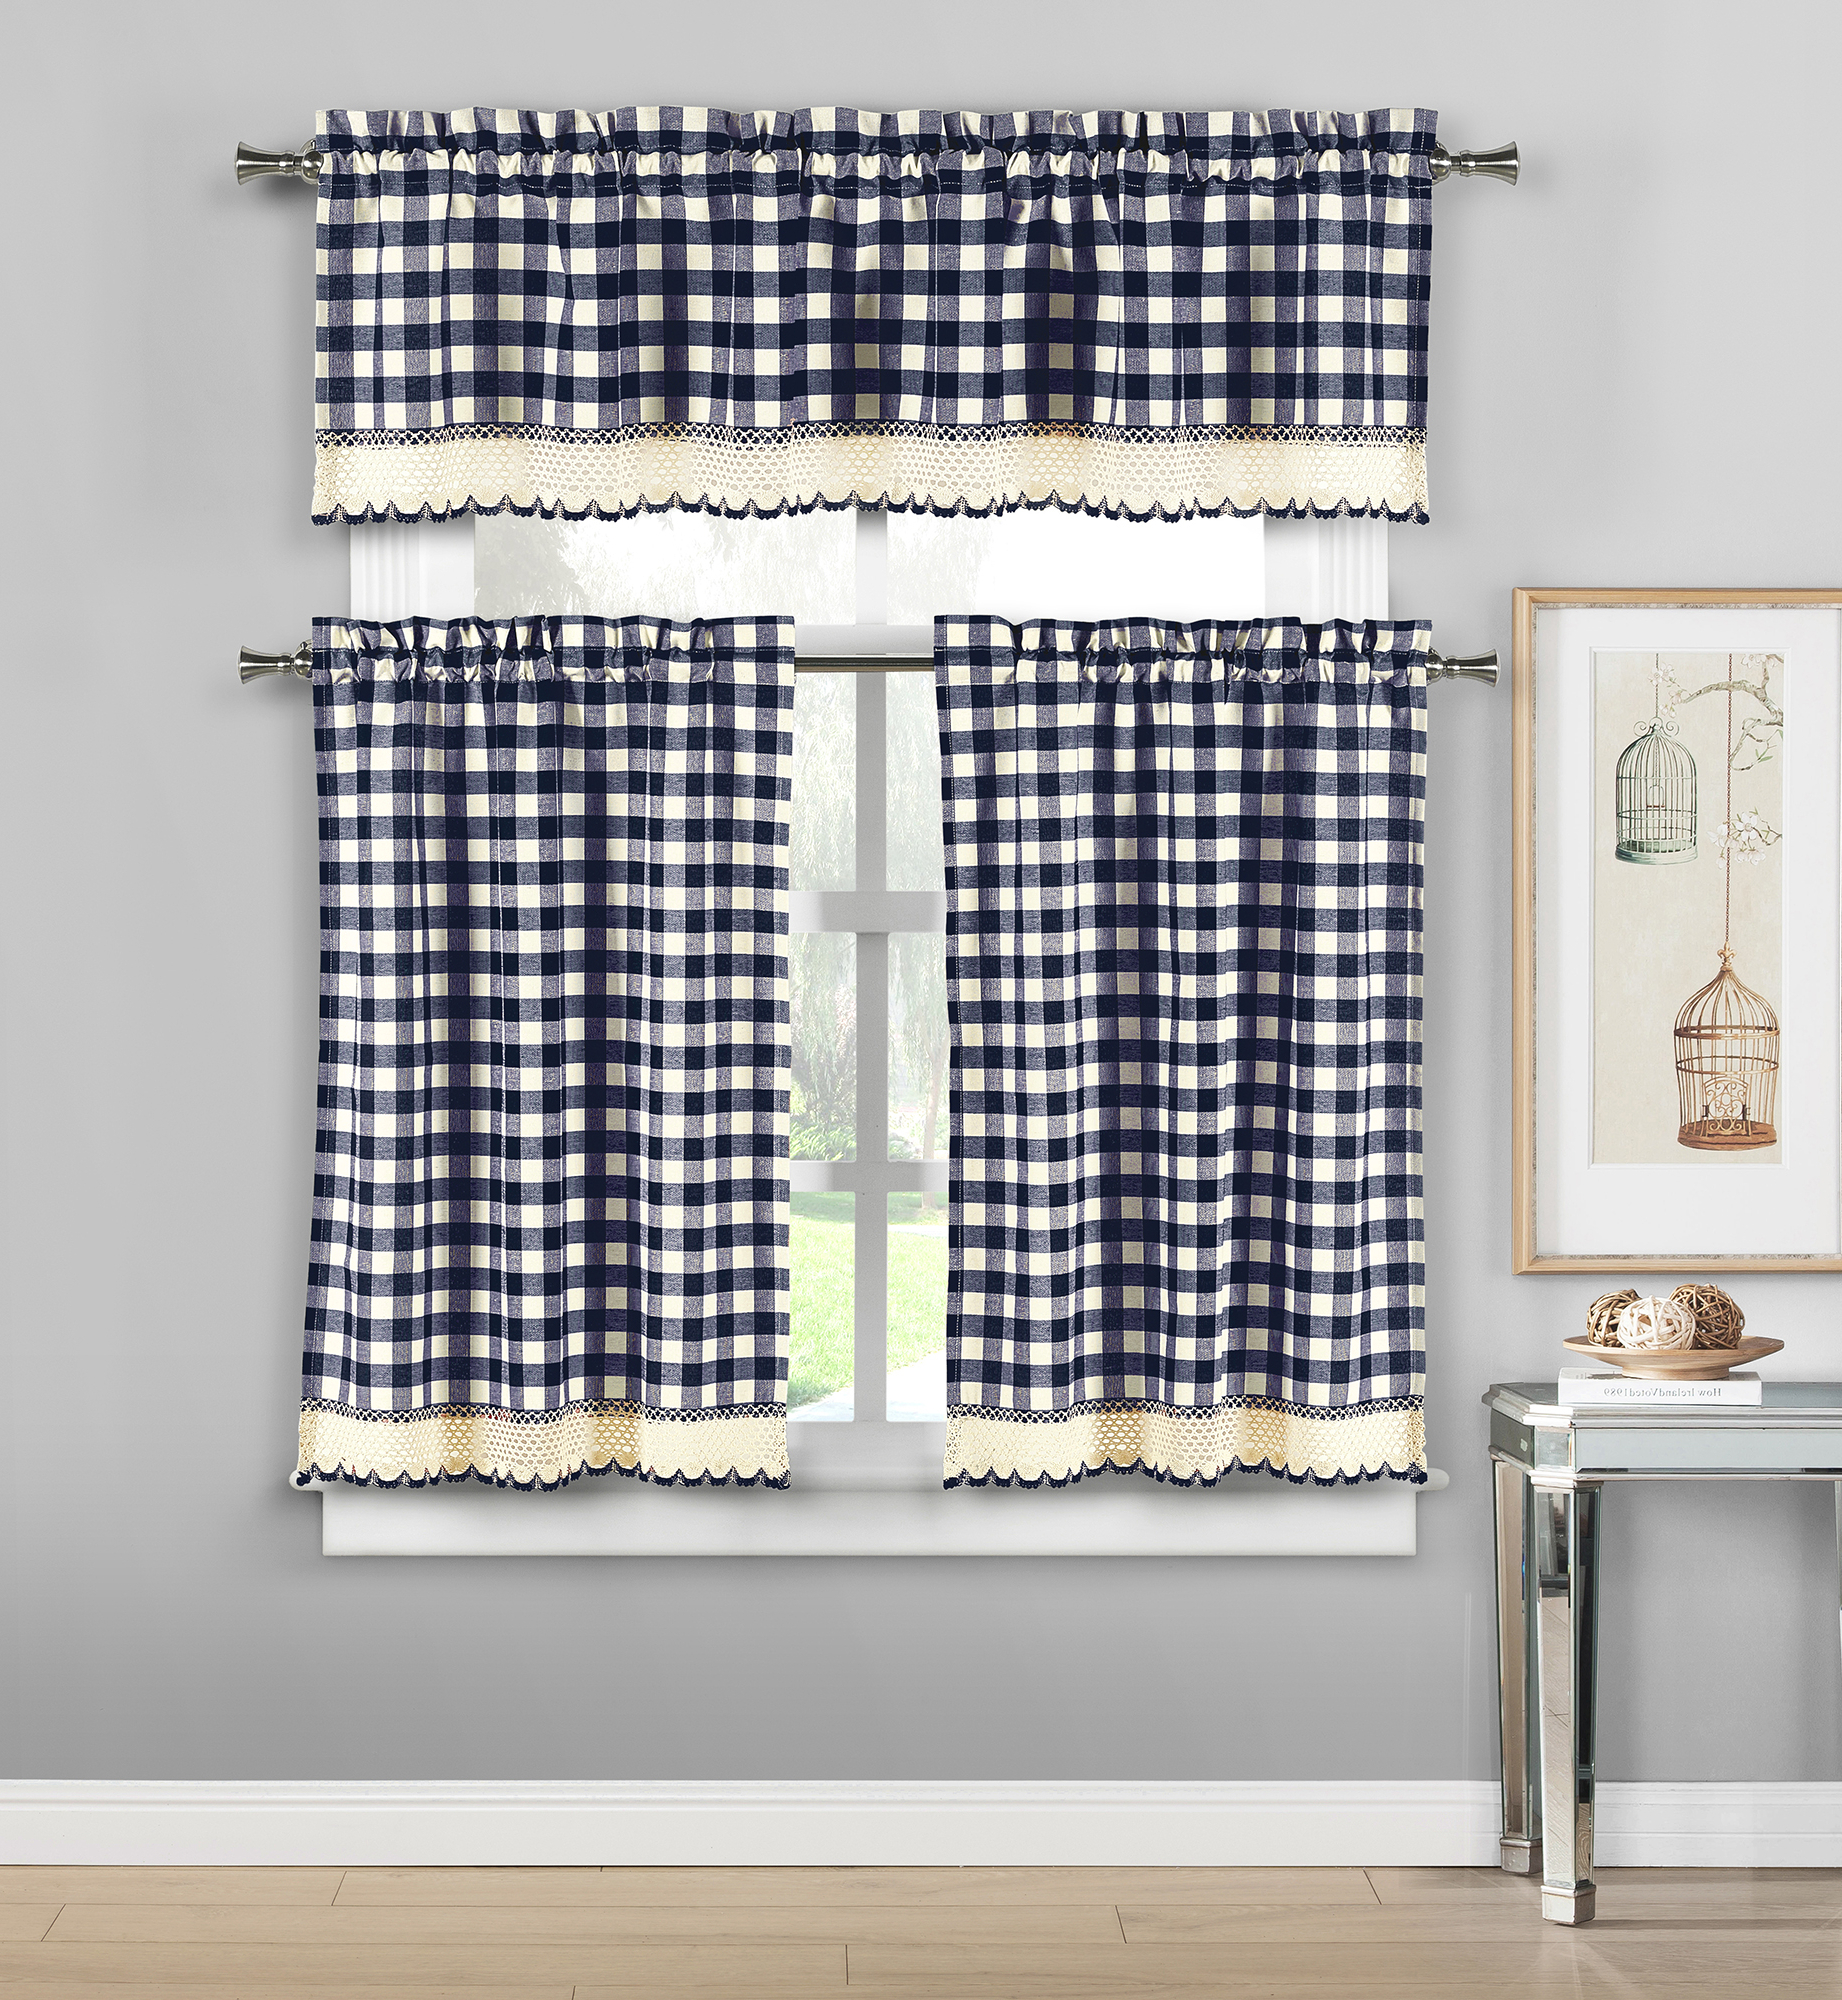 Details About Plaid Checkered Crochet Cotton Blend 3pc Window Curtain Kitchen Tier & Valance For Latest Cotton Blend Classic Checkered Decorative Window Curtains (View 6 of 20)